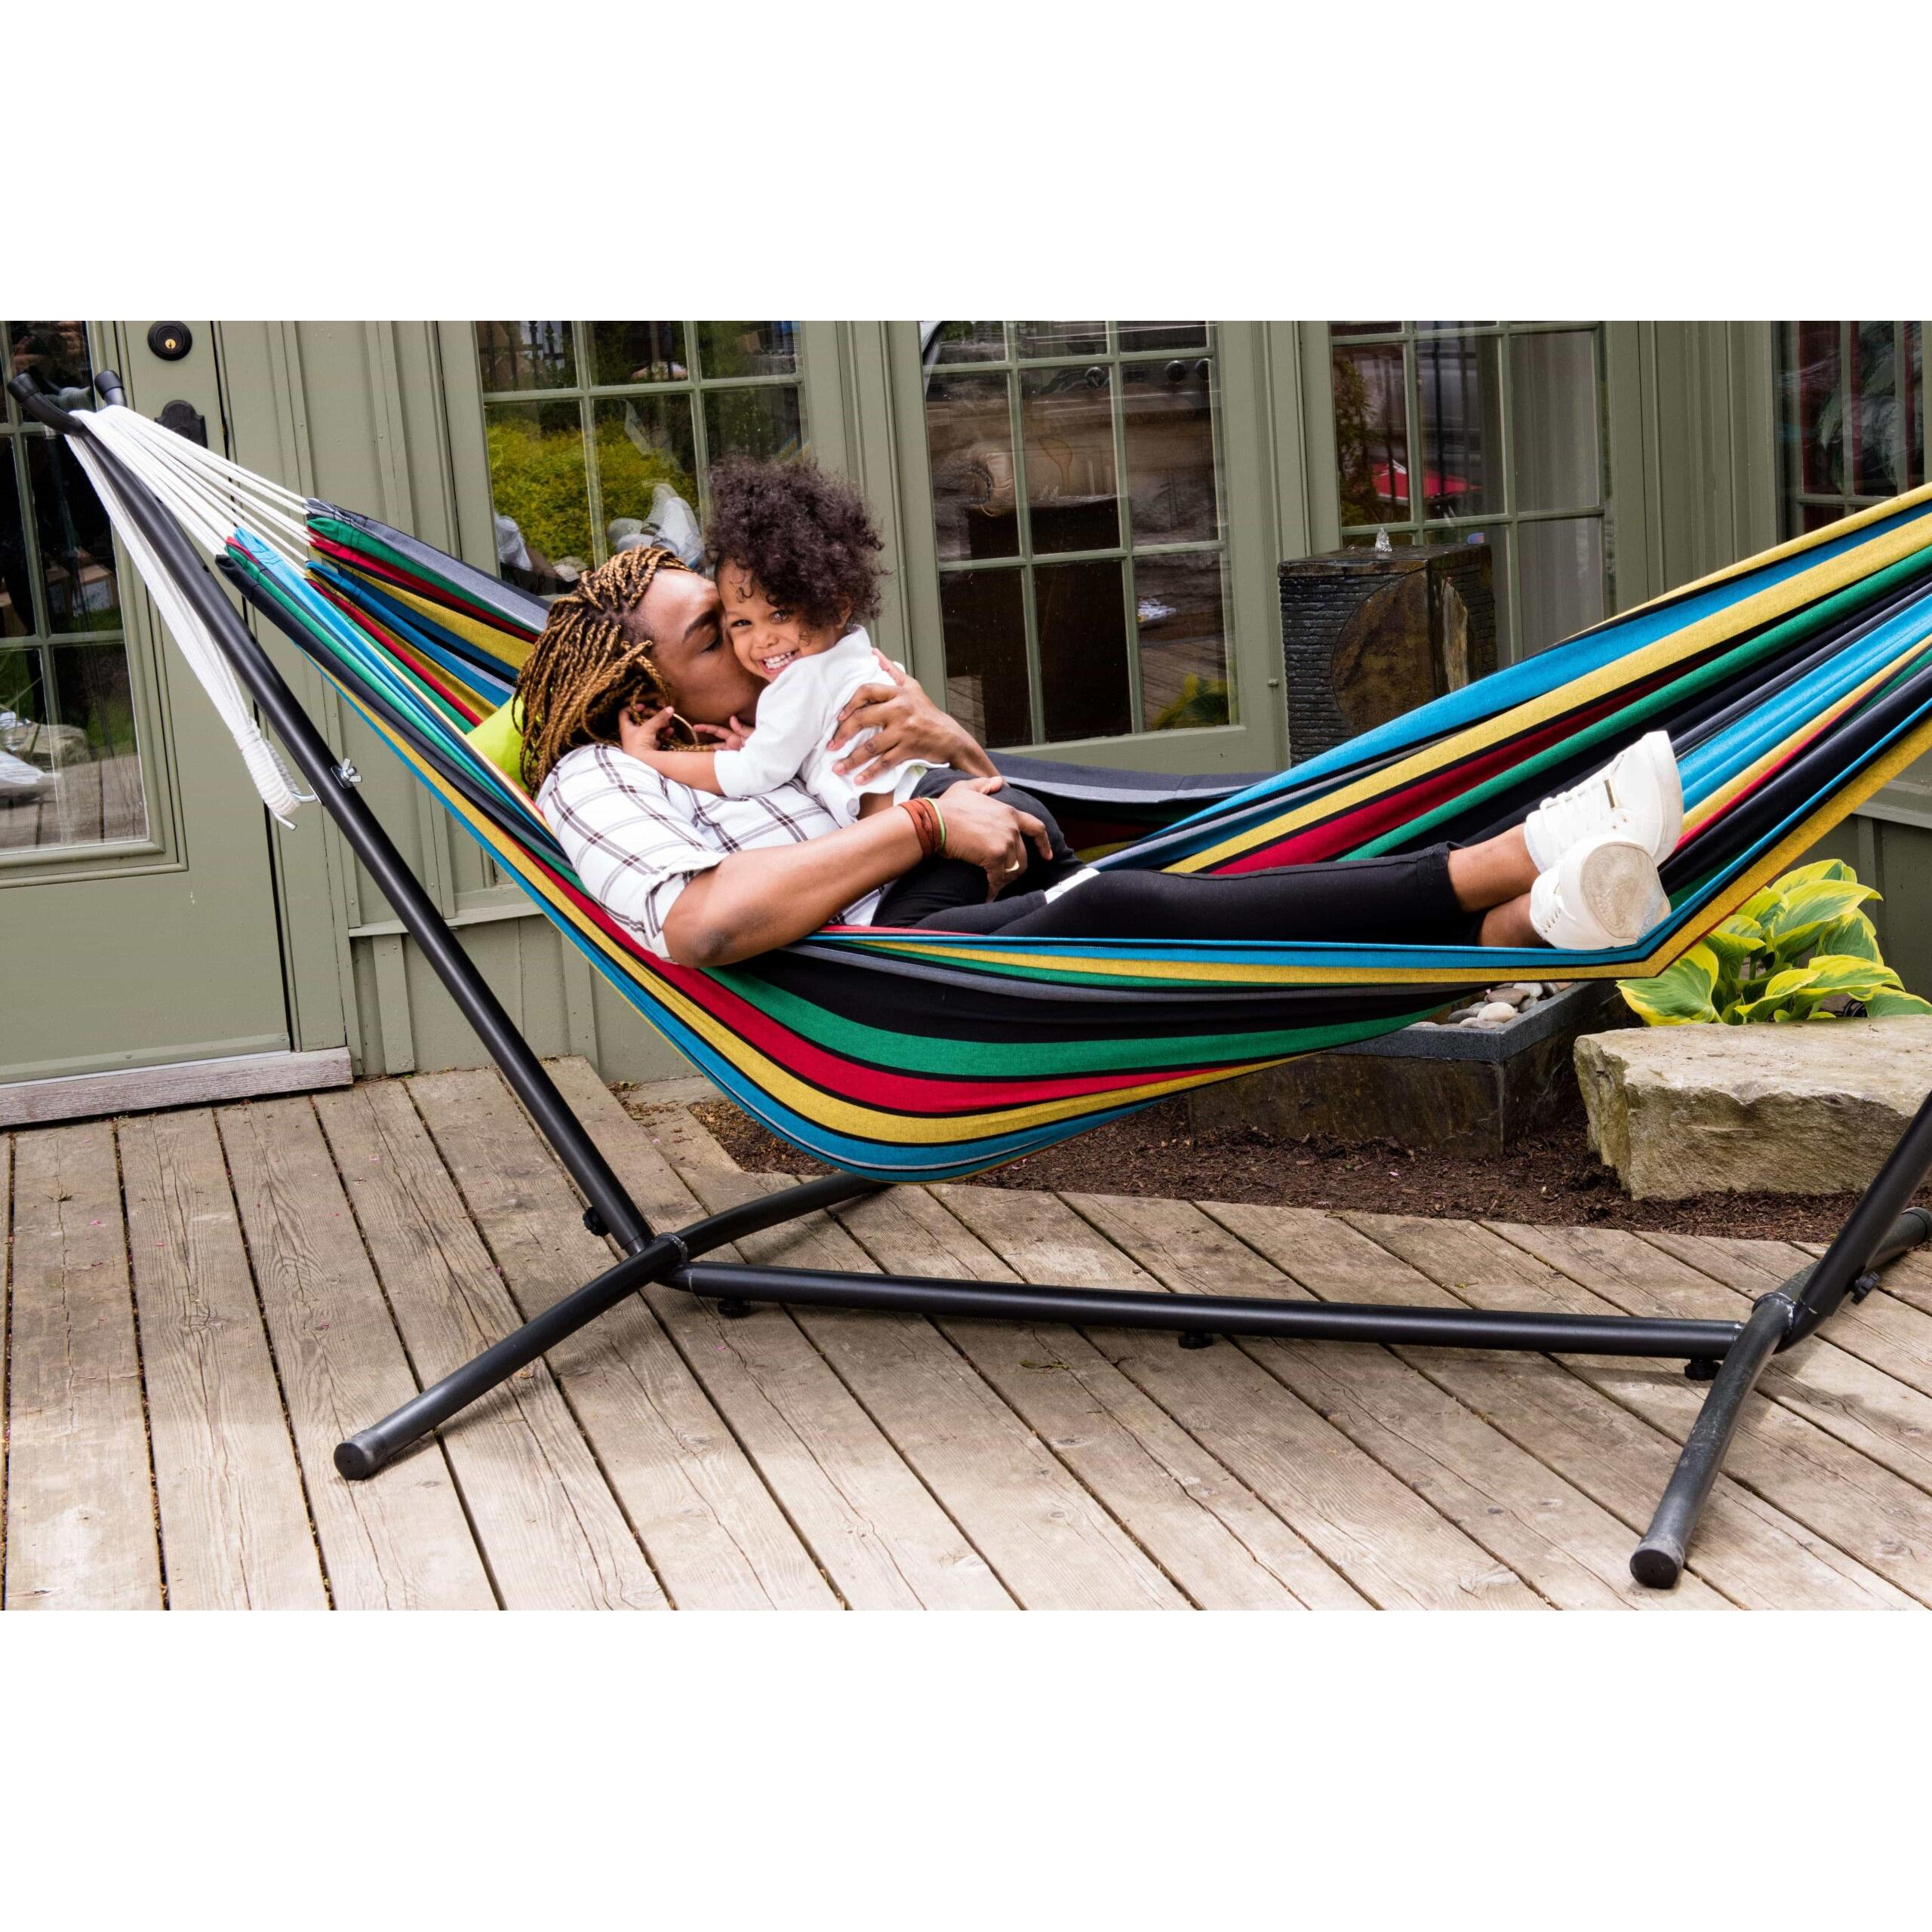 Universal Hammock Stand & Double Cotton Rio Night Hammock second featured image